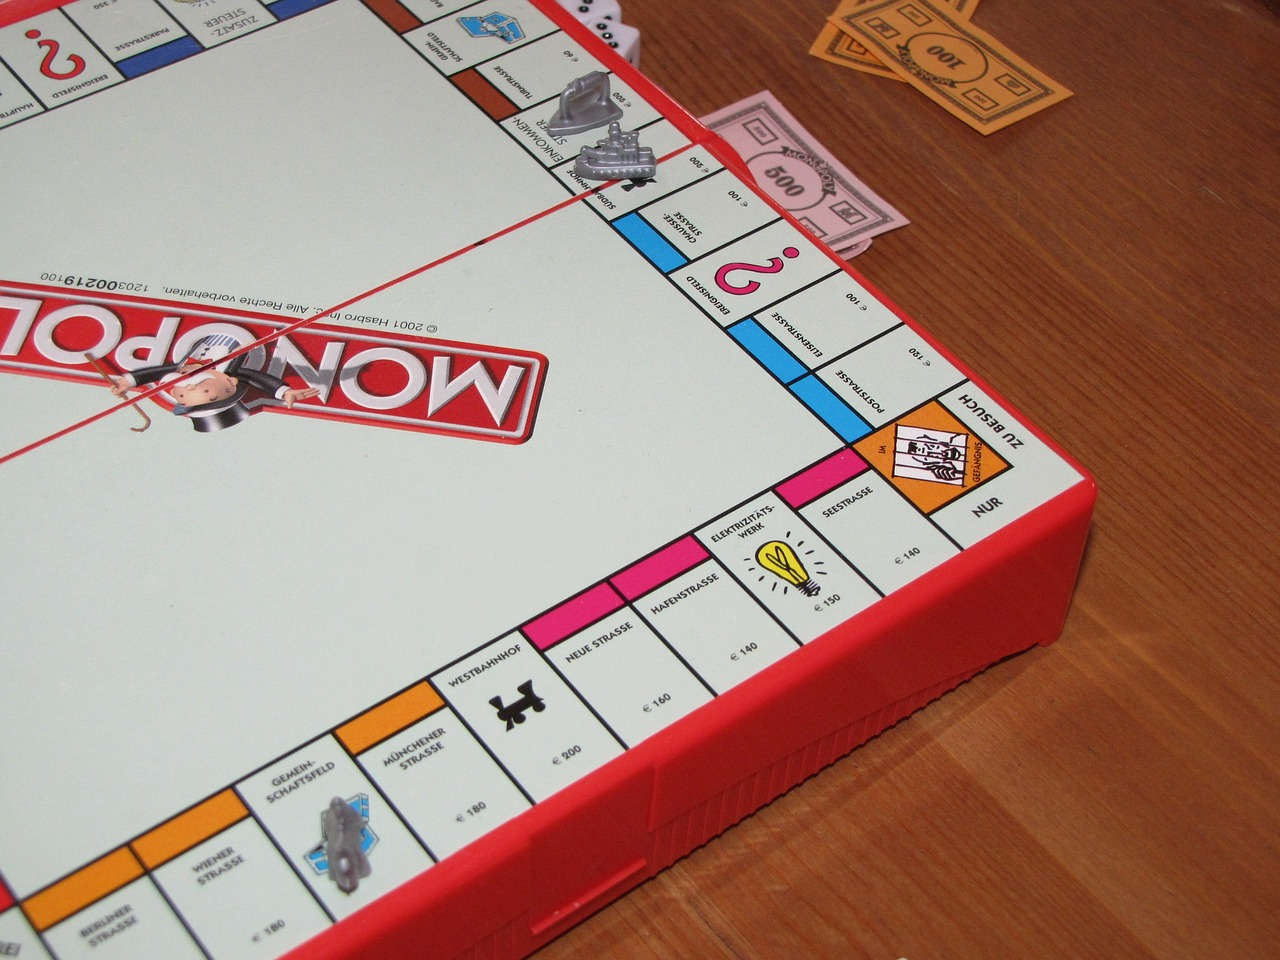 Monopoly,play,sociable,board game,gesellschaftsspiel - free image from  needpix.com